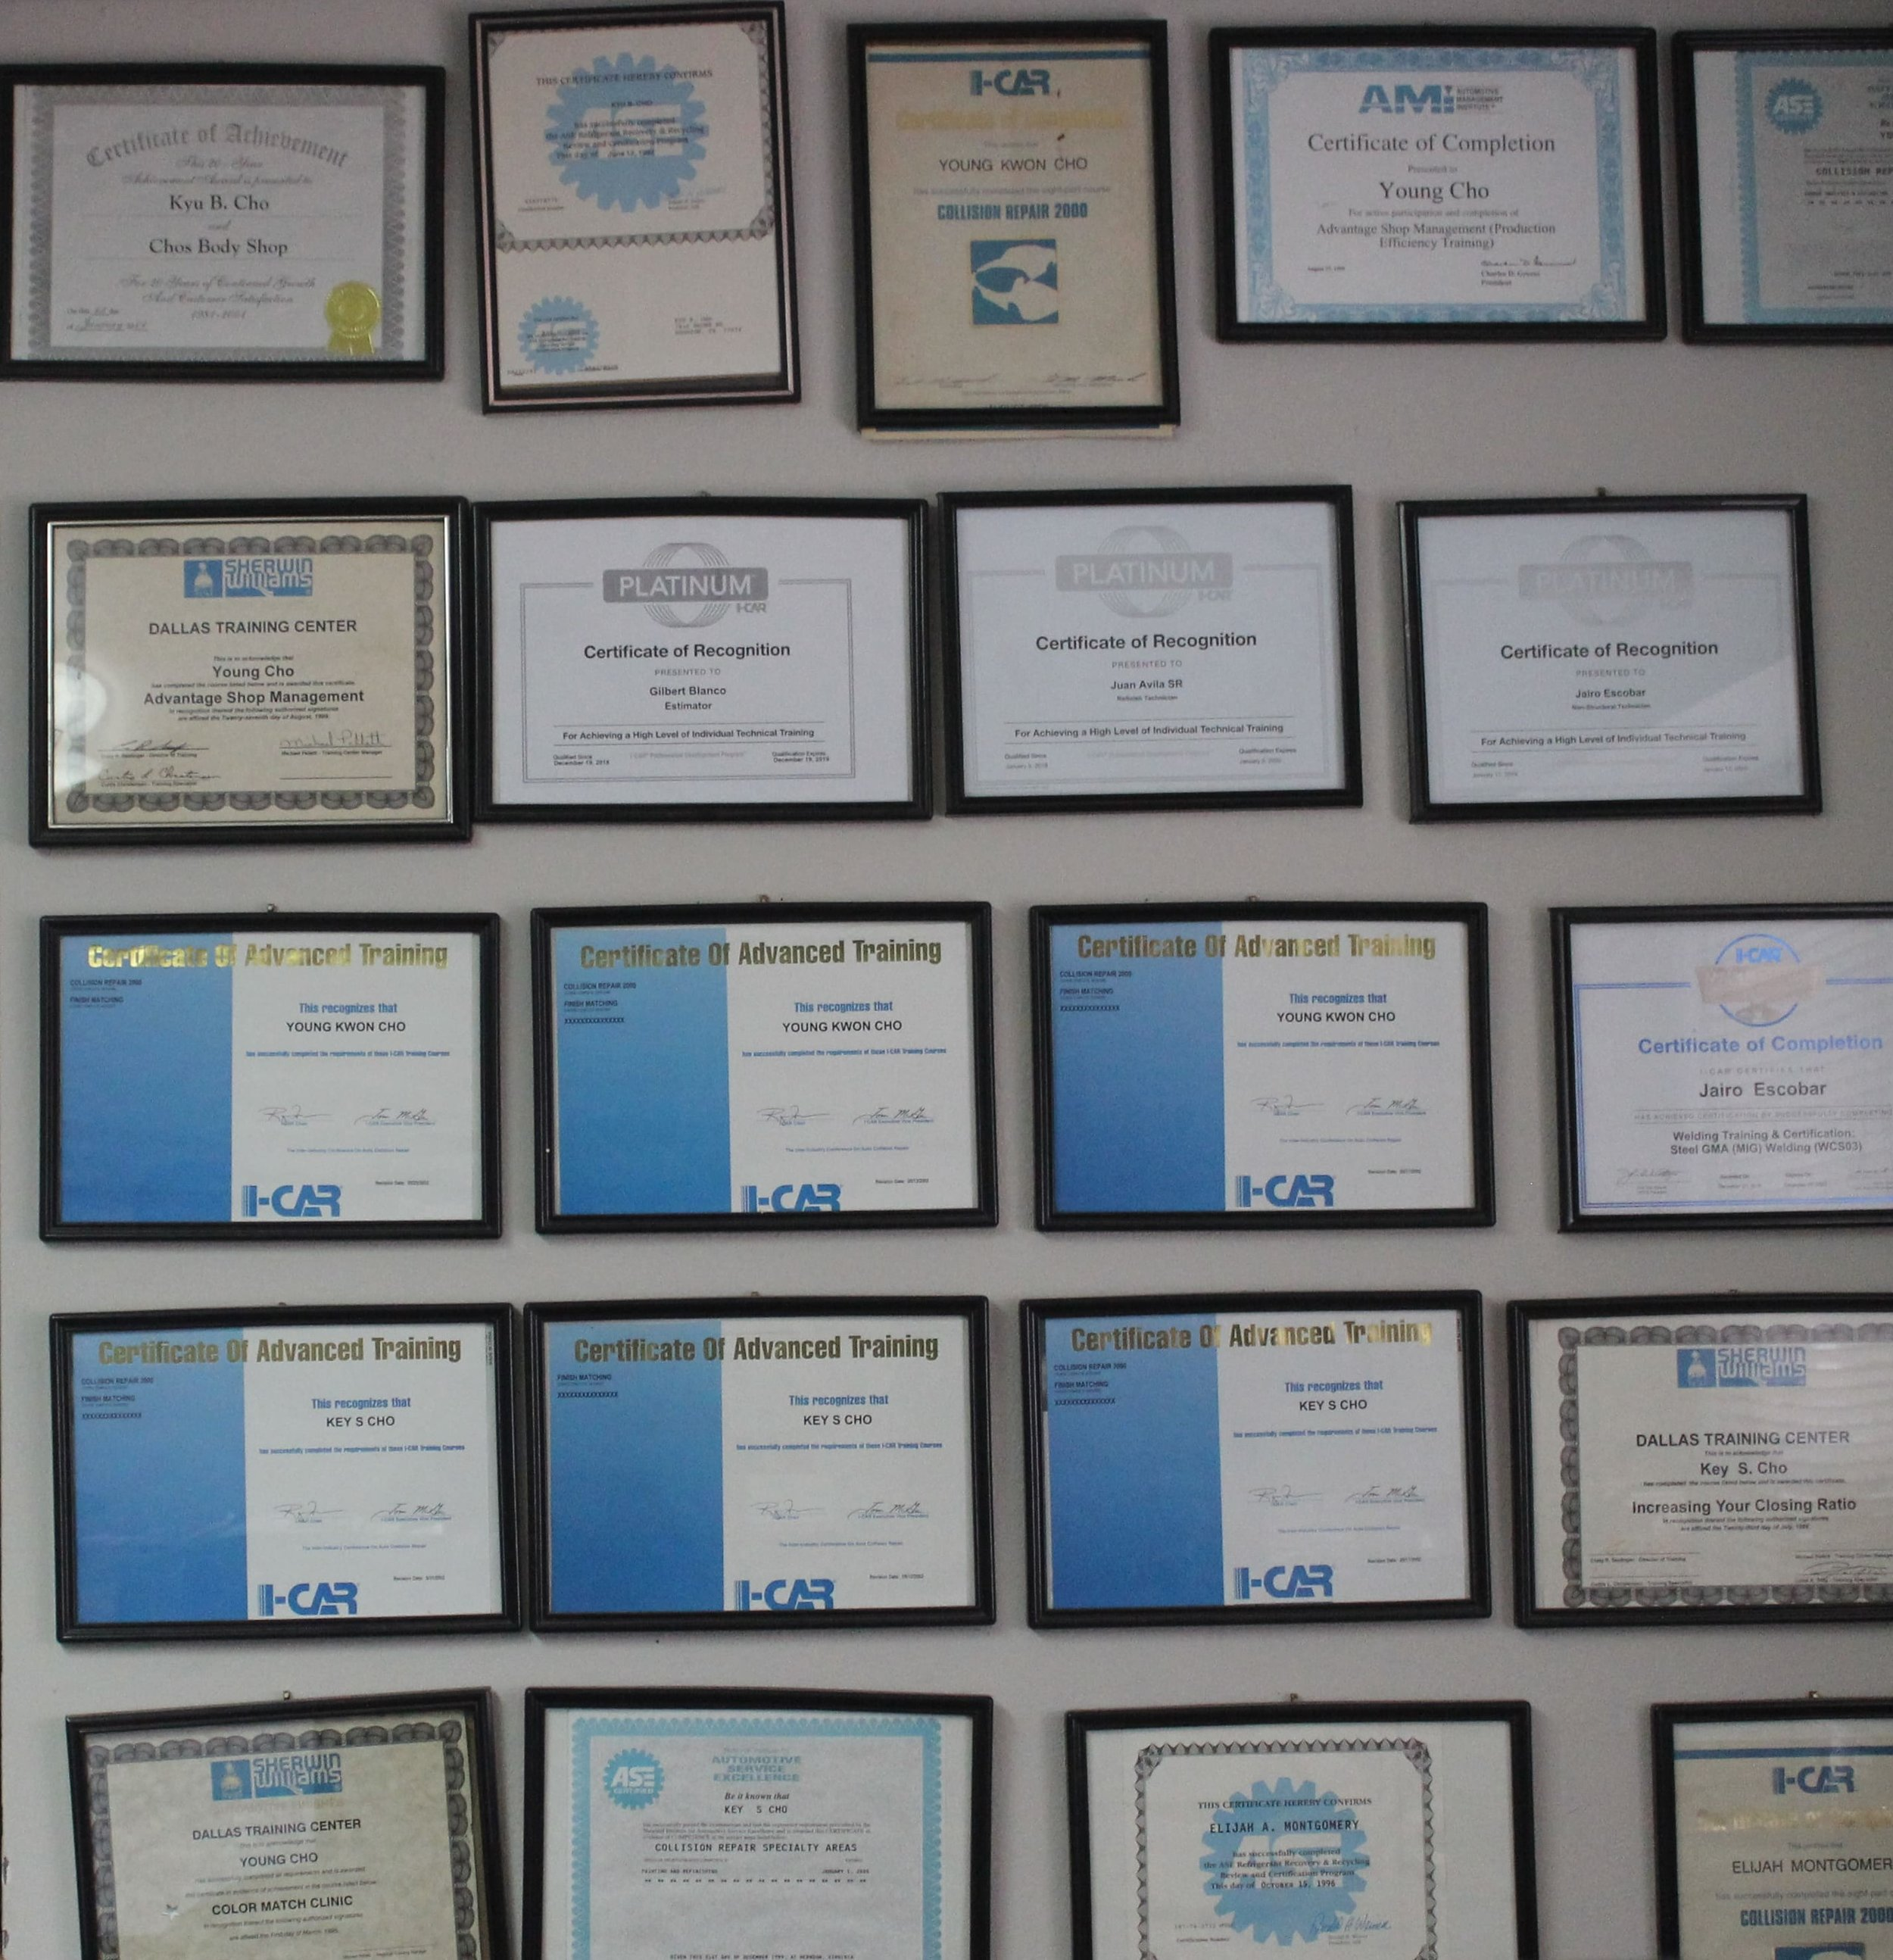 certificates for young cho body shop.JPG